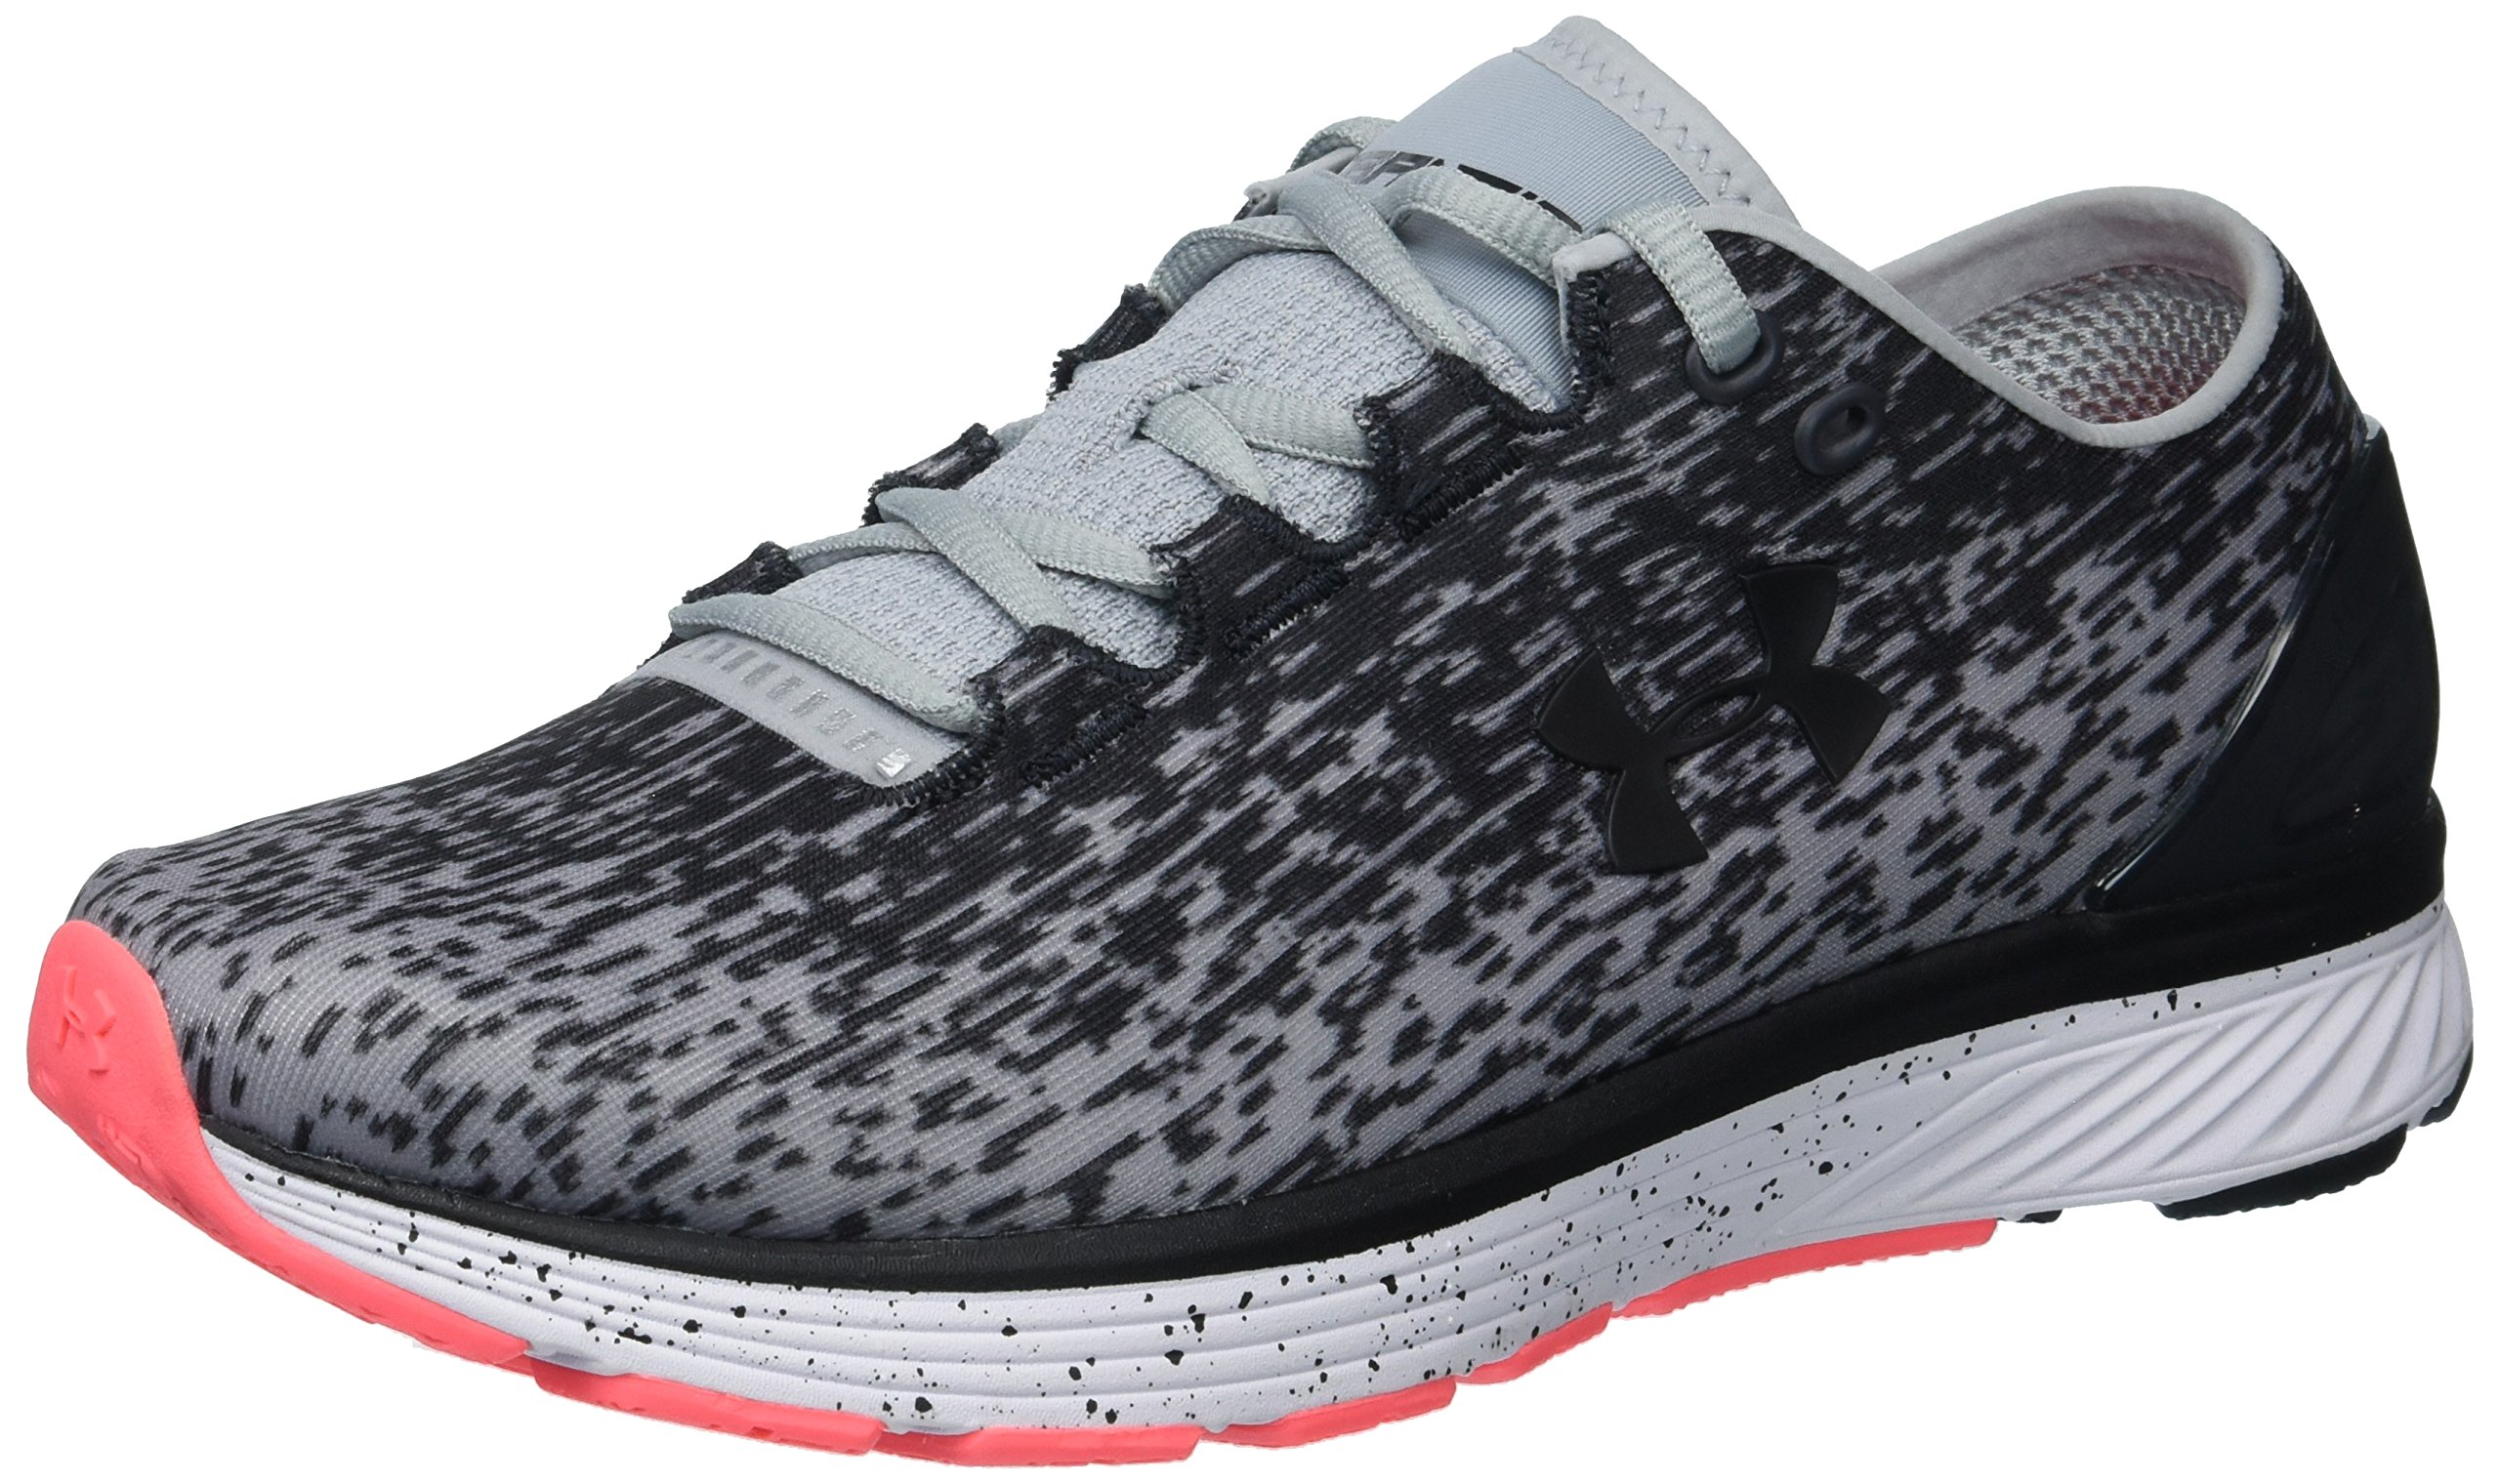 Under Armour Women's Charged Bandit 3 Ombre Running Shoe, Overcast Gray (100)/Anthracite, 8.5